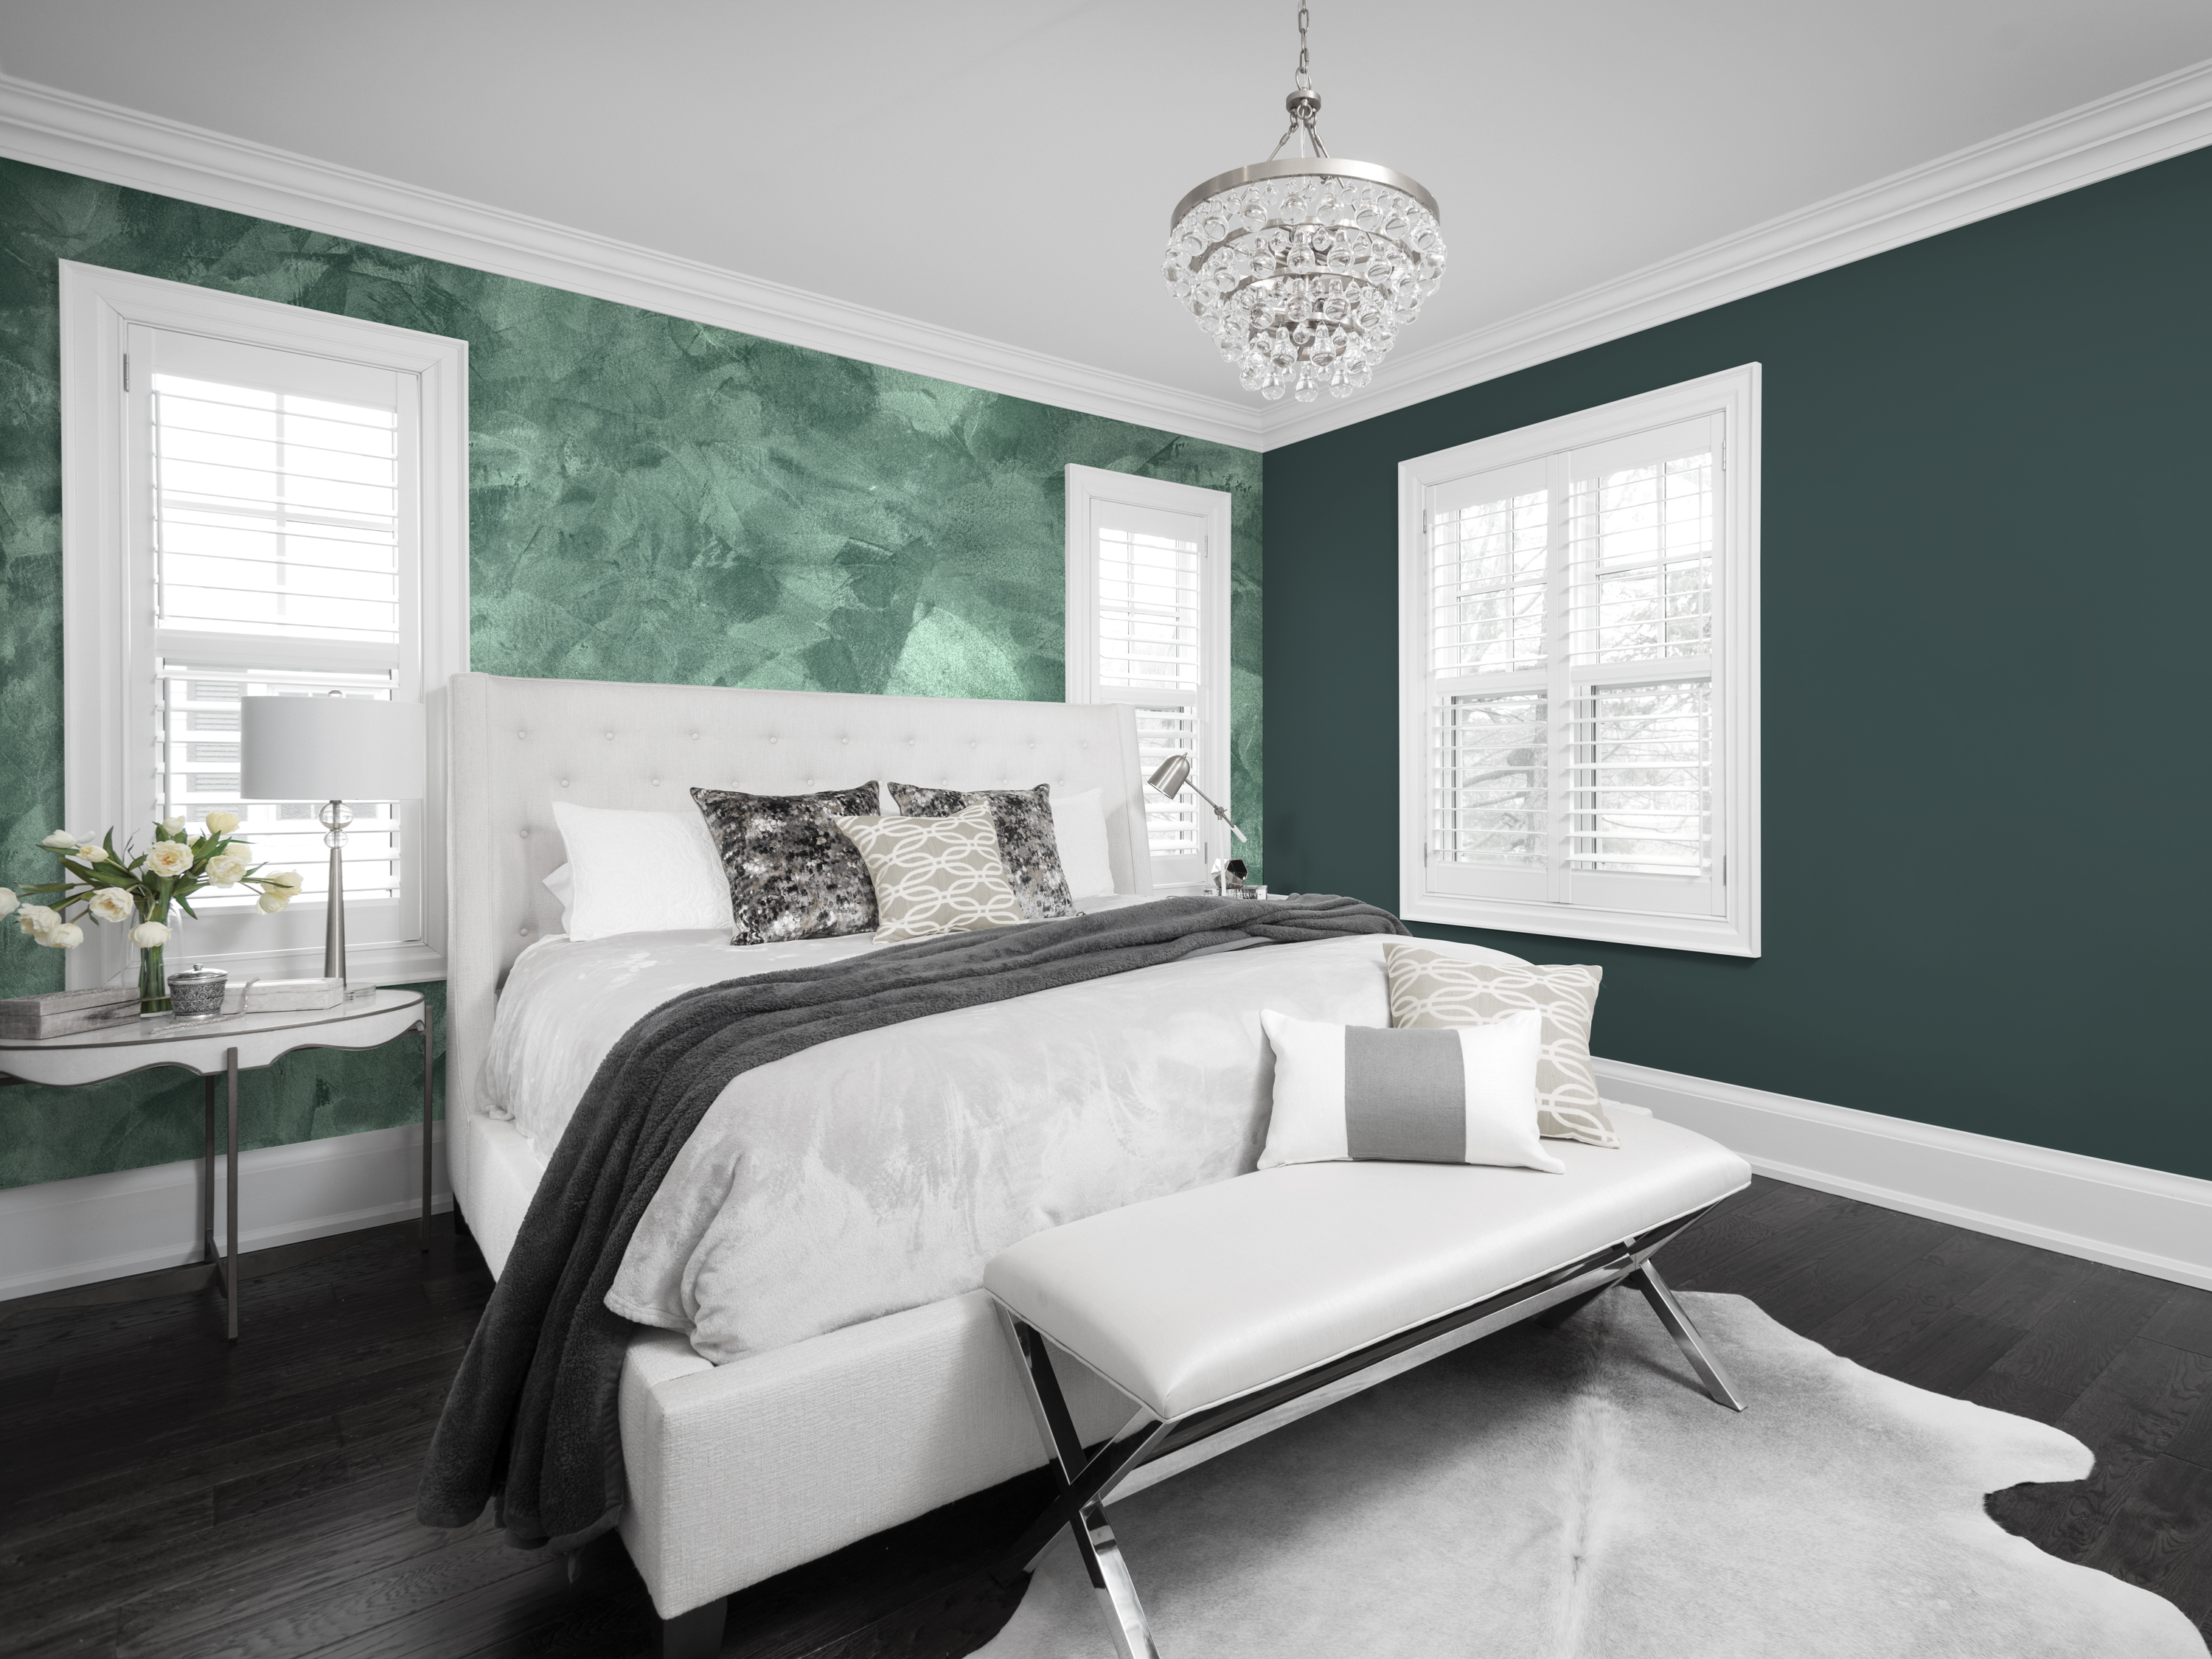 Dulux Paints By Ppg Unveils Two Deep Luxurious Greens As 2019